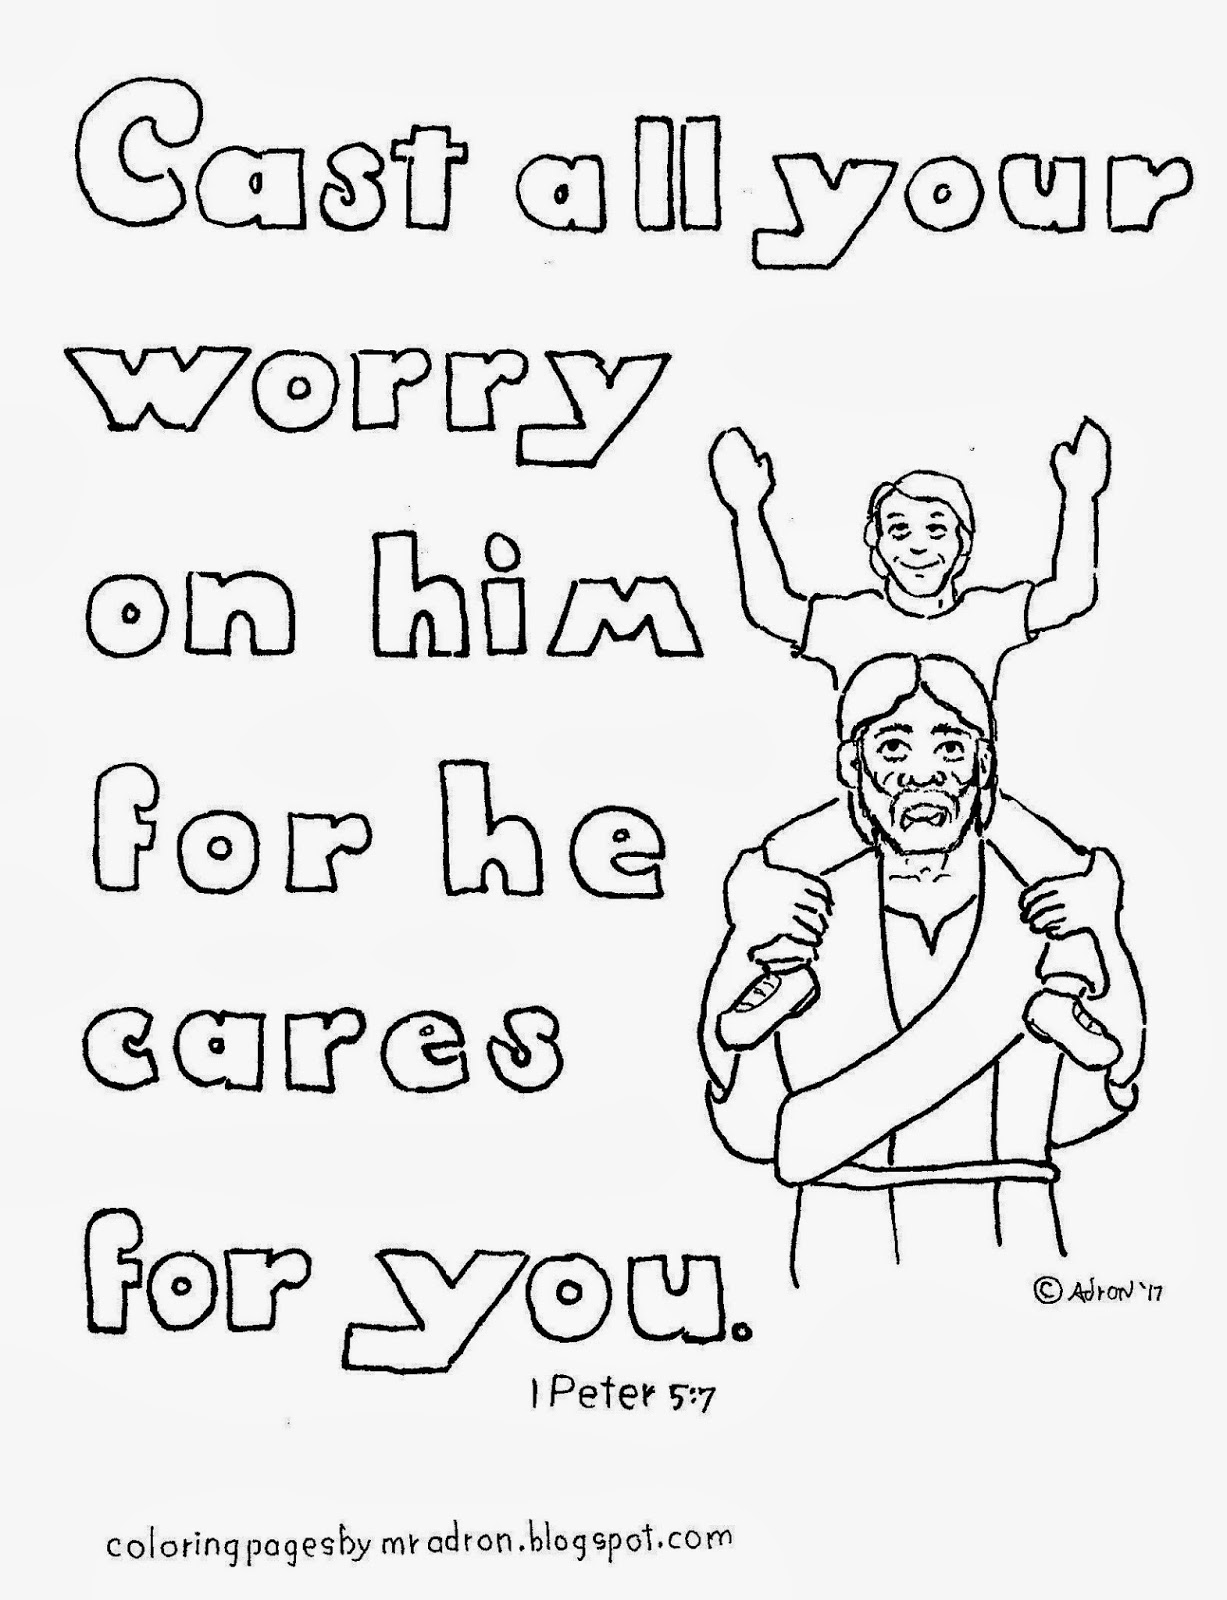 1 peter 5 7 coloring page printable 1 peter 5 7 coloring page hobbies creativity 7 coloring 5 1 peter page